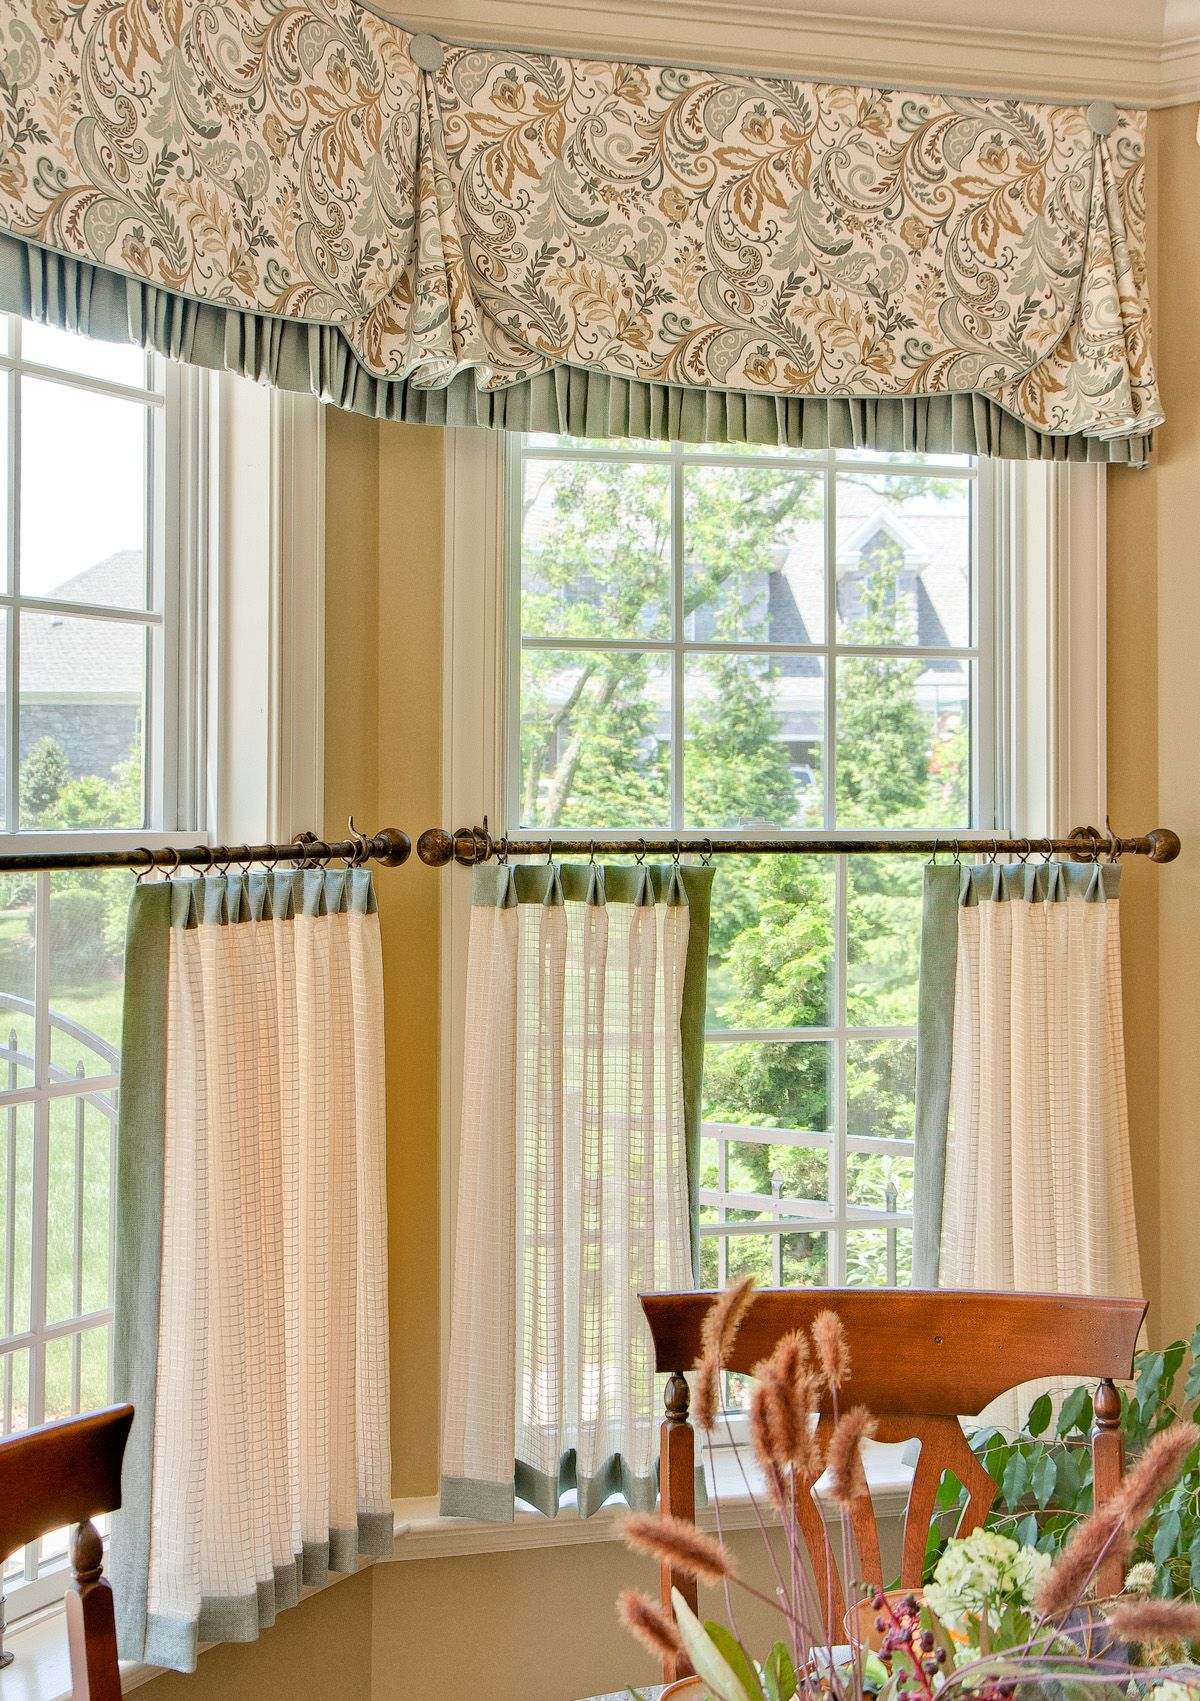 Kitchen nook window treatments  a casual window treatment consisting of a contrasttrimmed valance